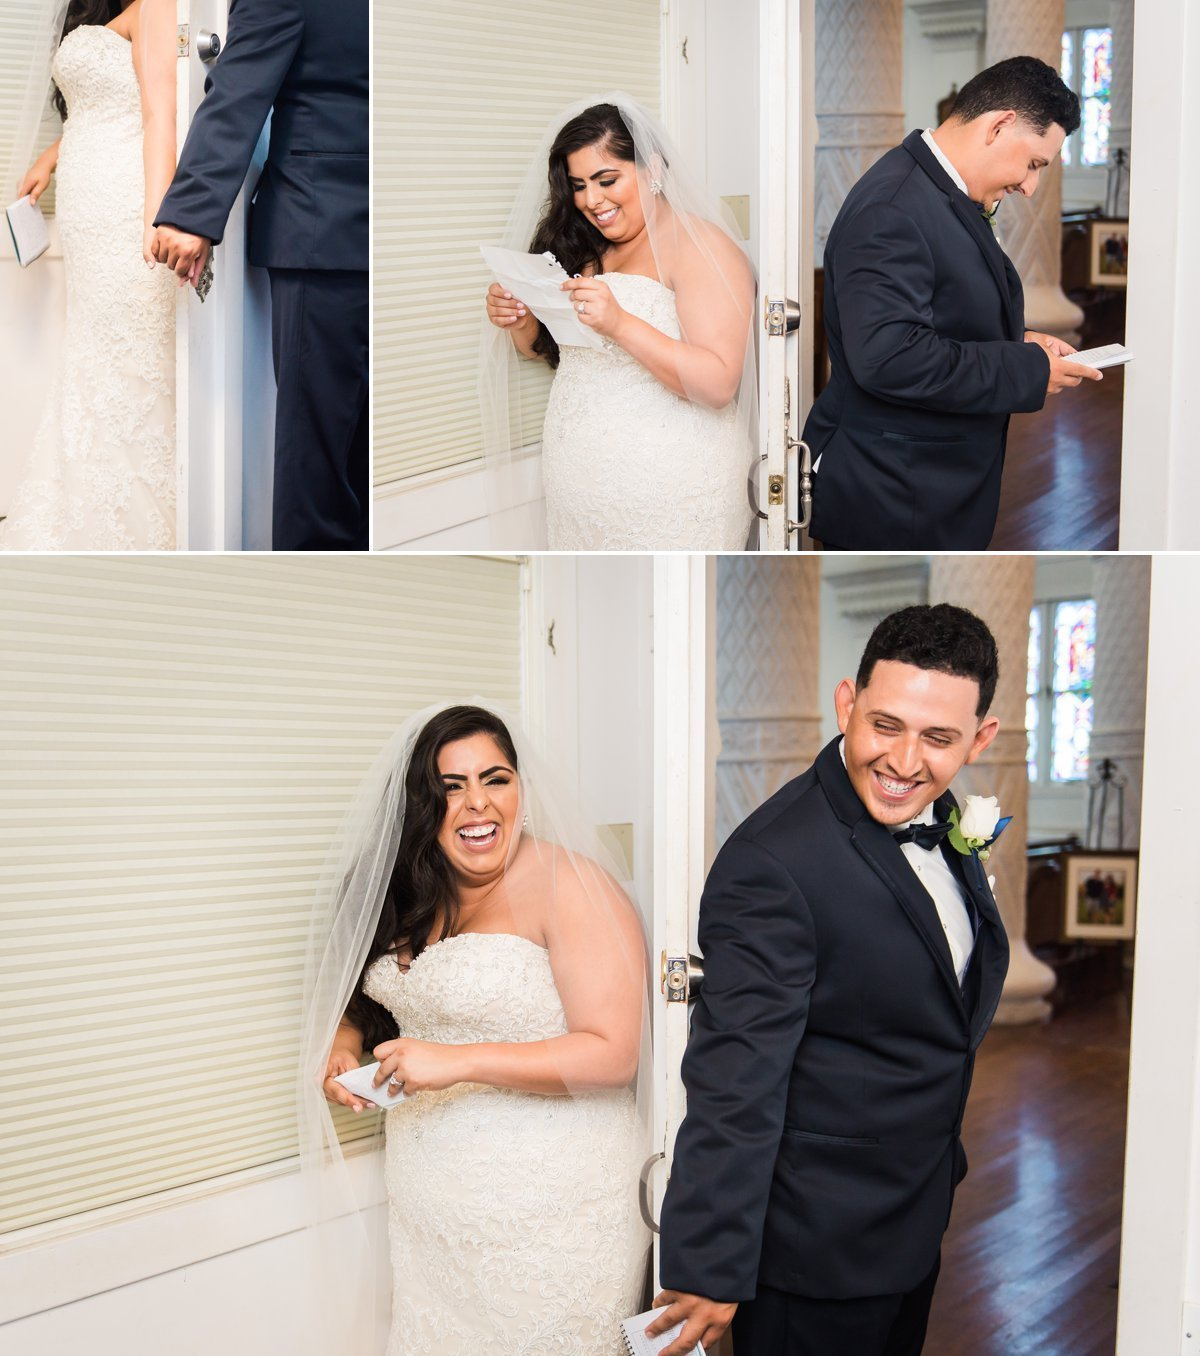 Monica-JJ Wedding 15